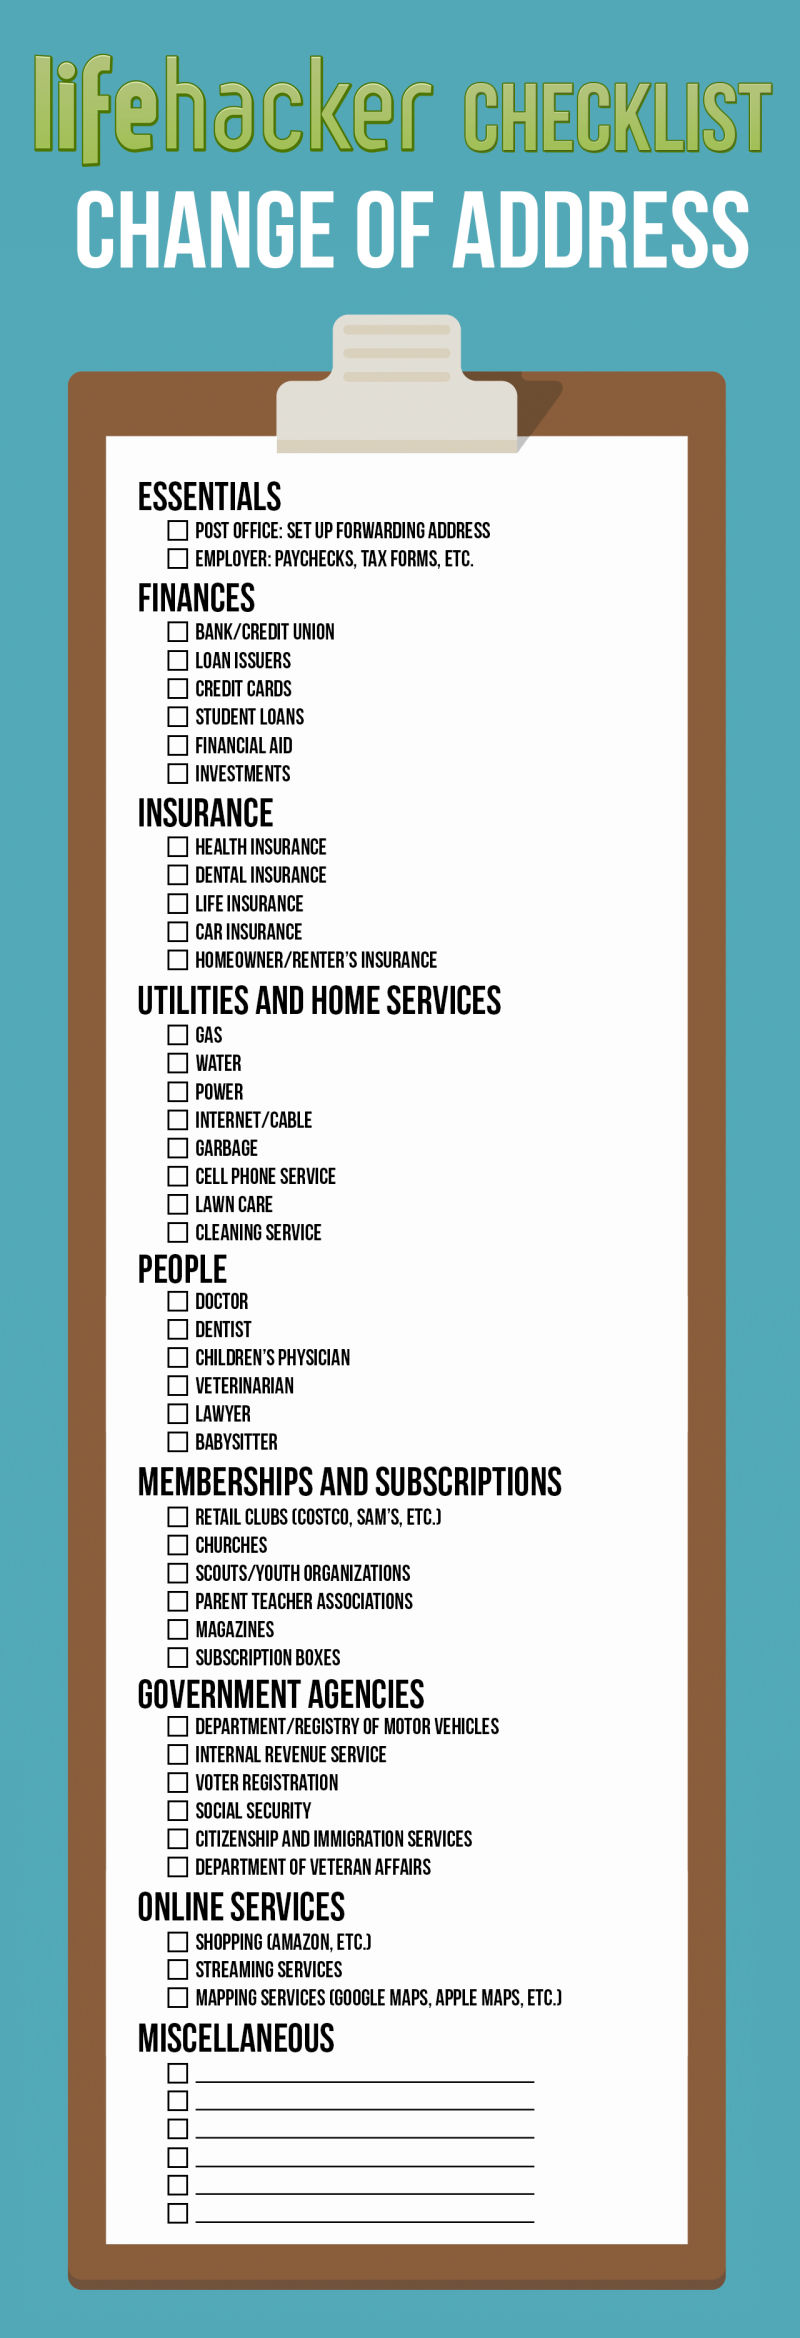 Organization Archives Page 2 Of 2 A Simplified Life